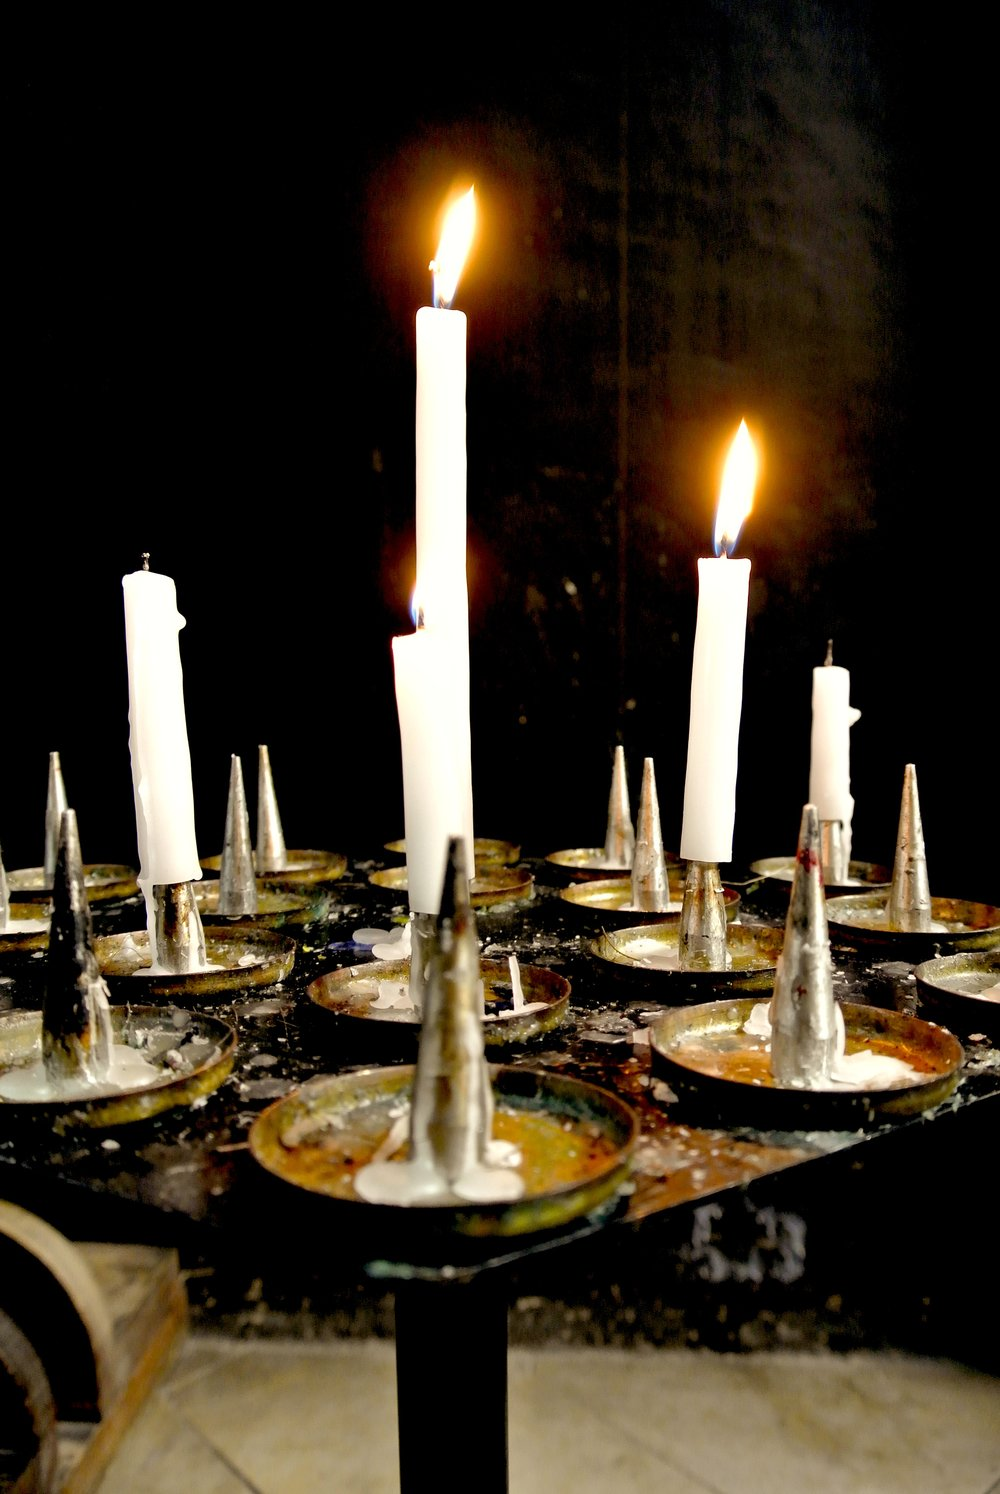 Light a candle and say a prayer, even if you're not religious — it certainly can't hurt, right?